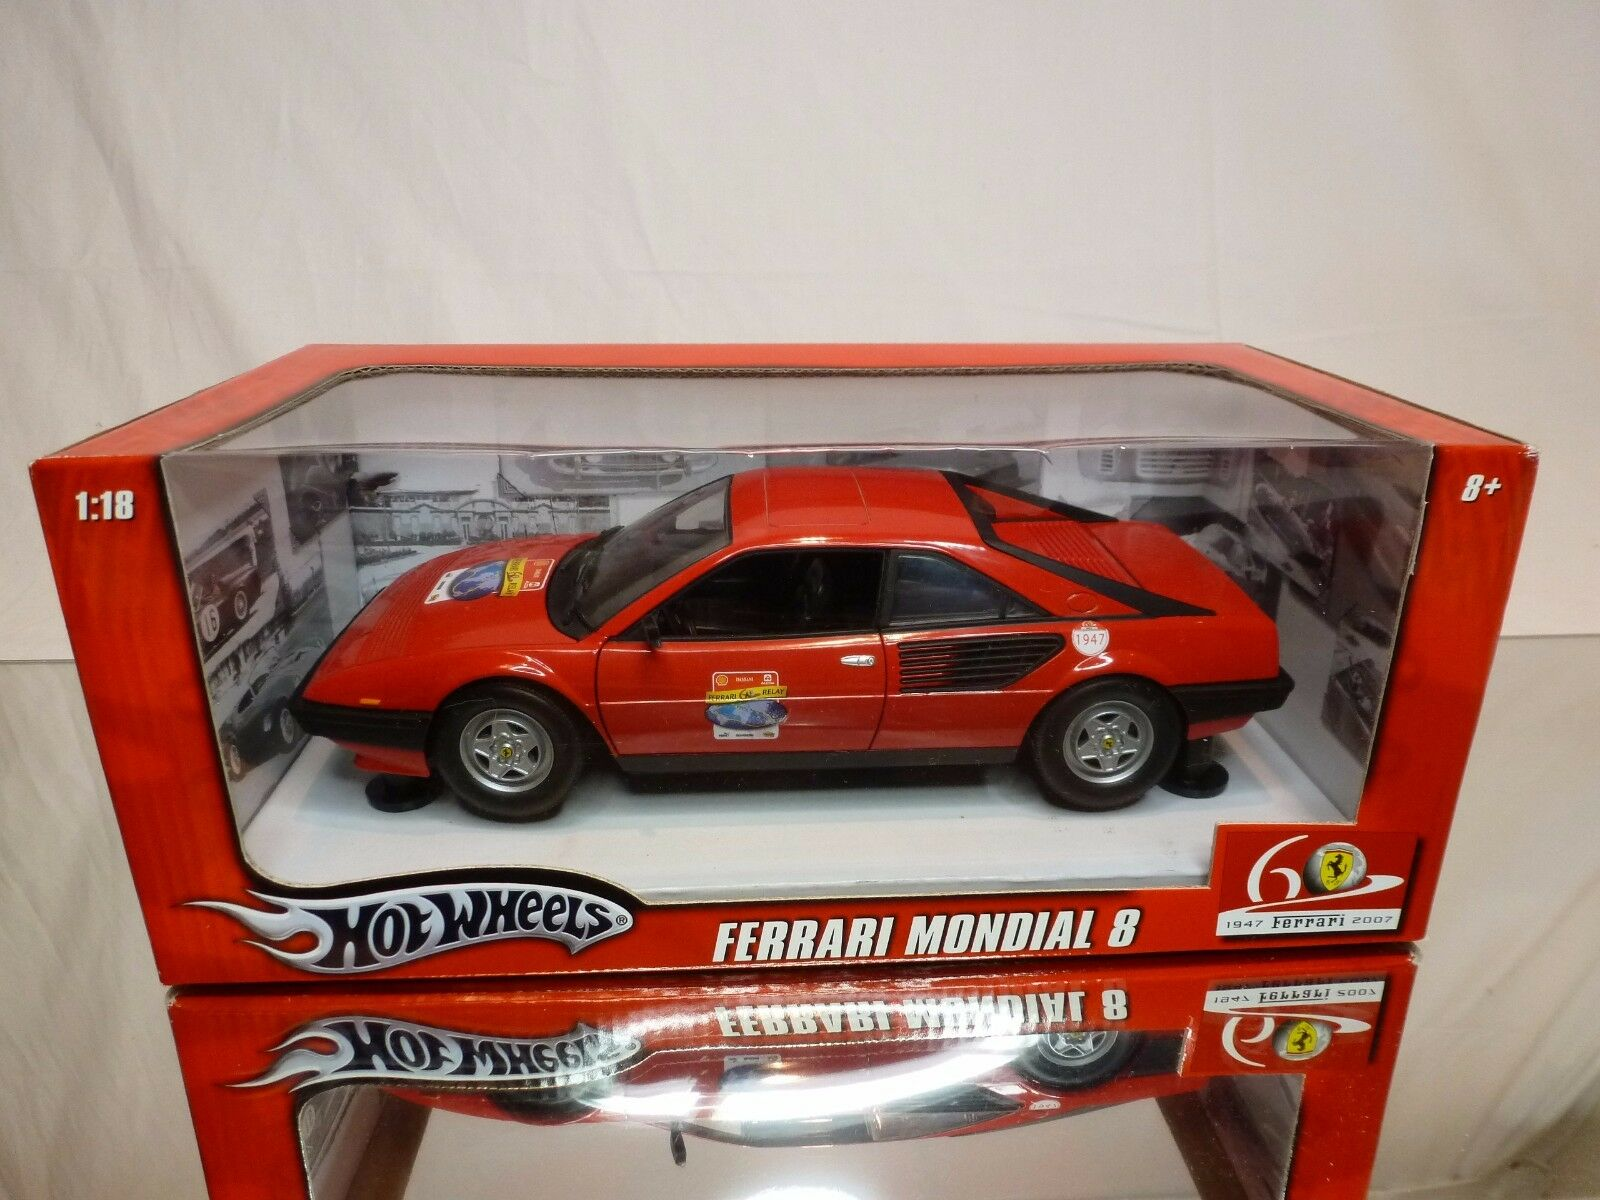 HOT WHEELS L7340 FERRARI MONDIAL 8 - 60 RELAY SHELL - Rojo  EXCELLENT IN BOX